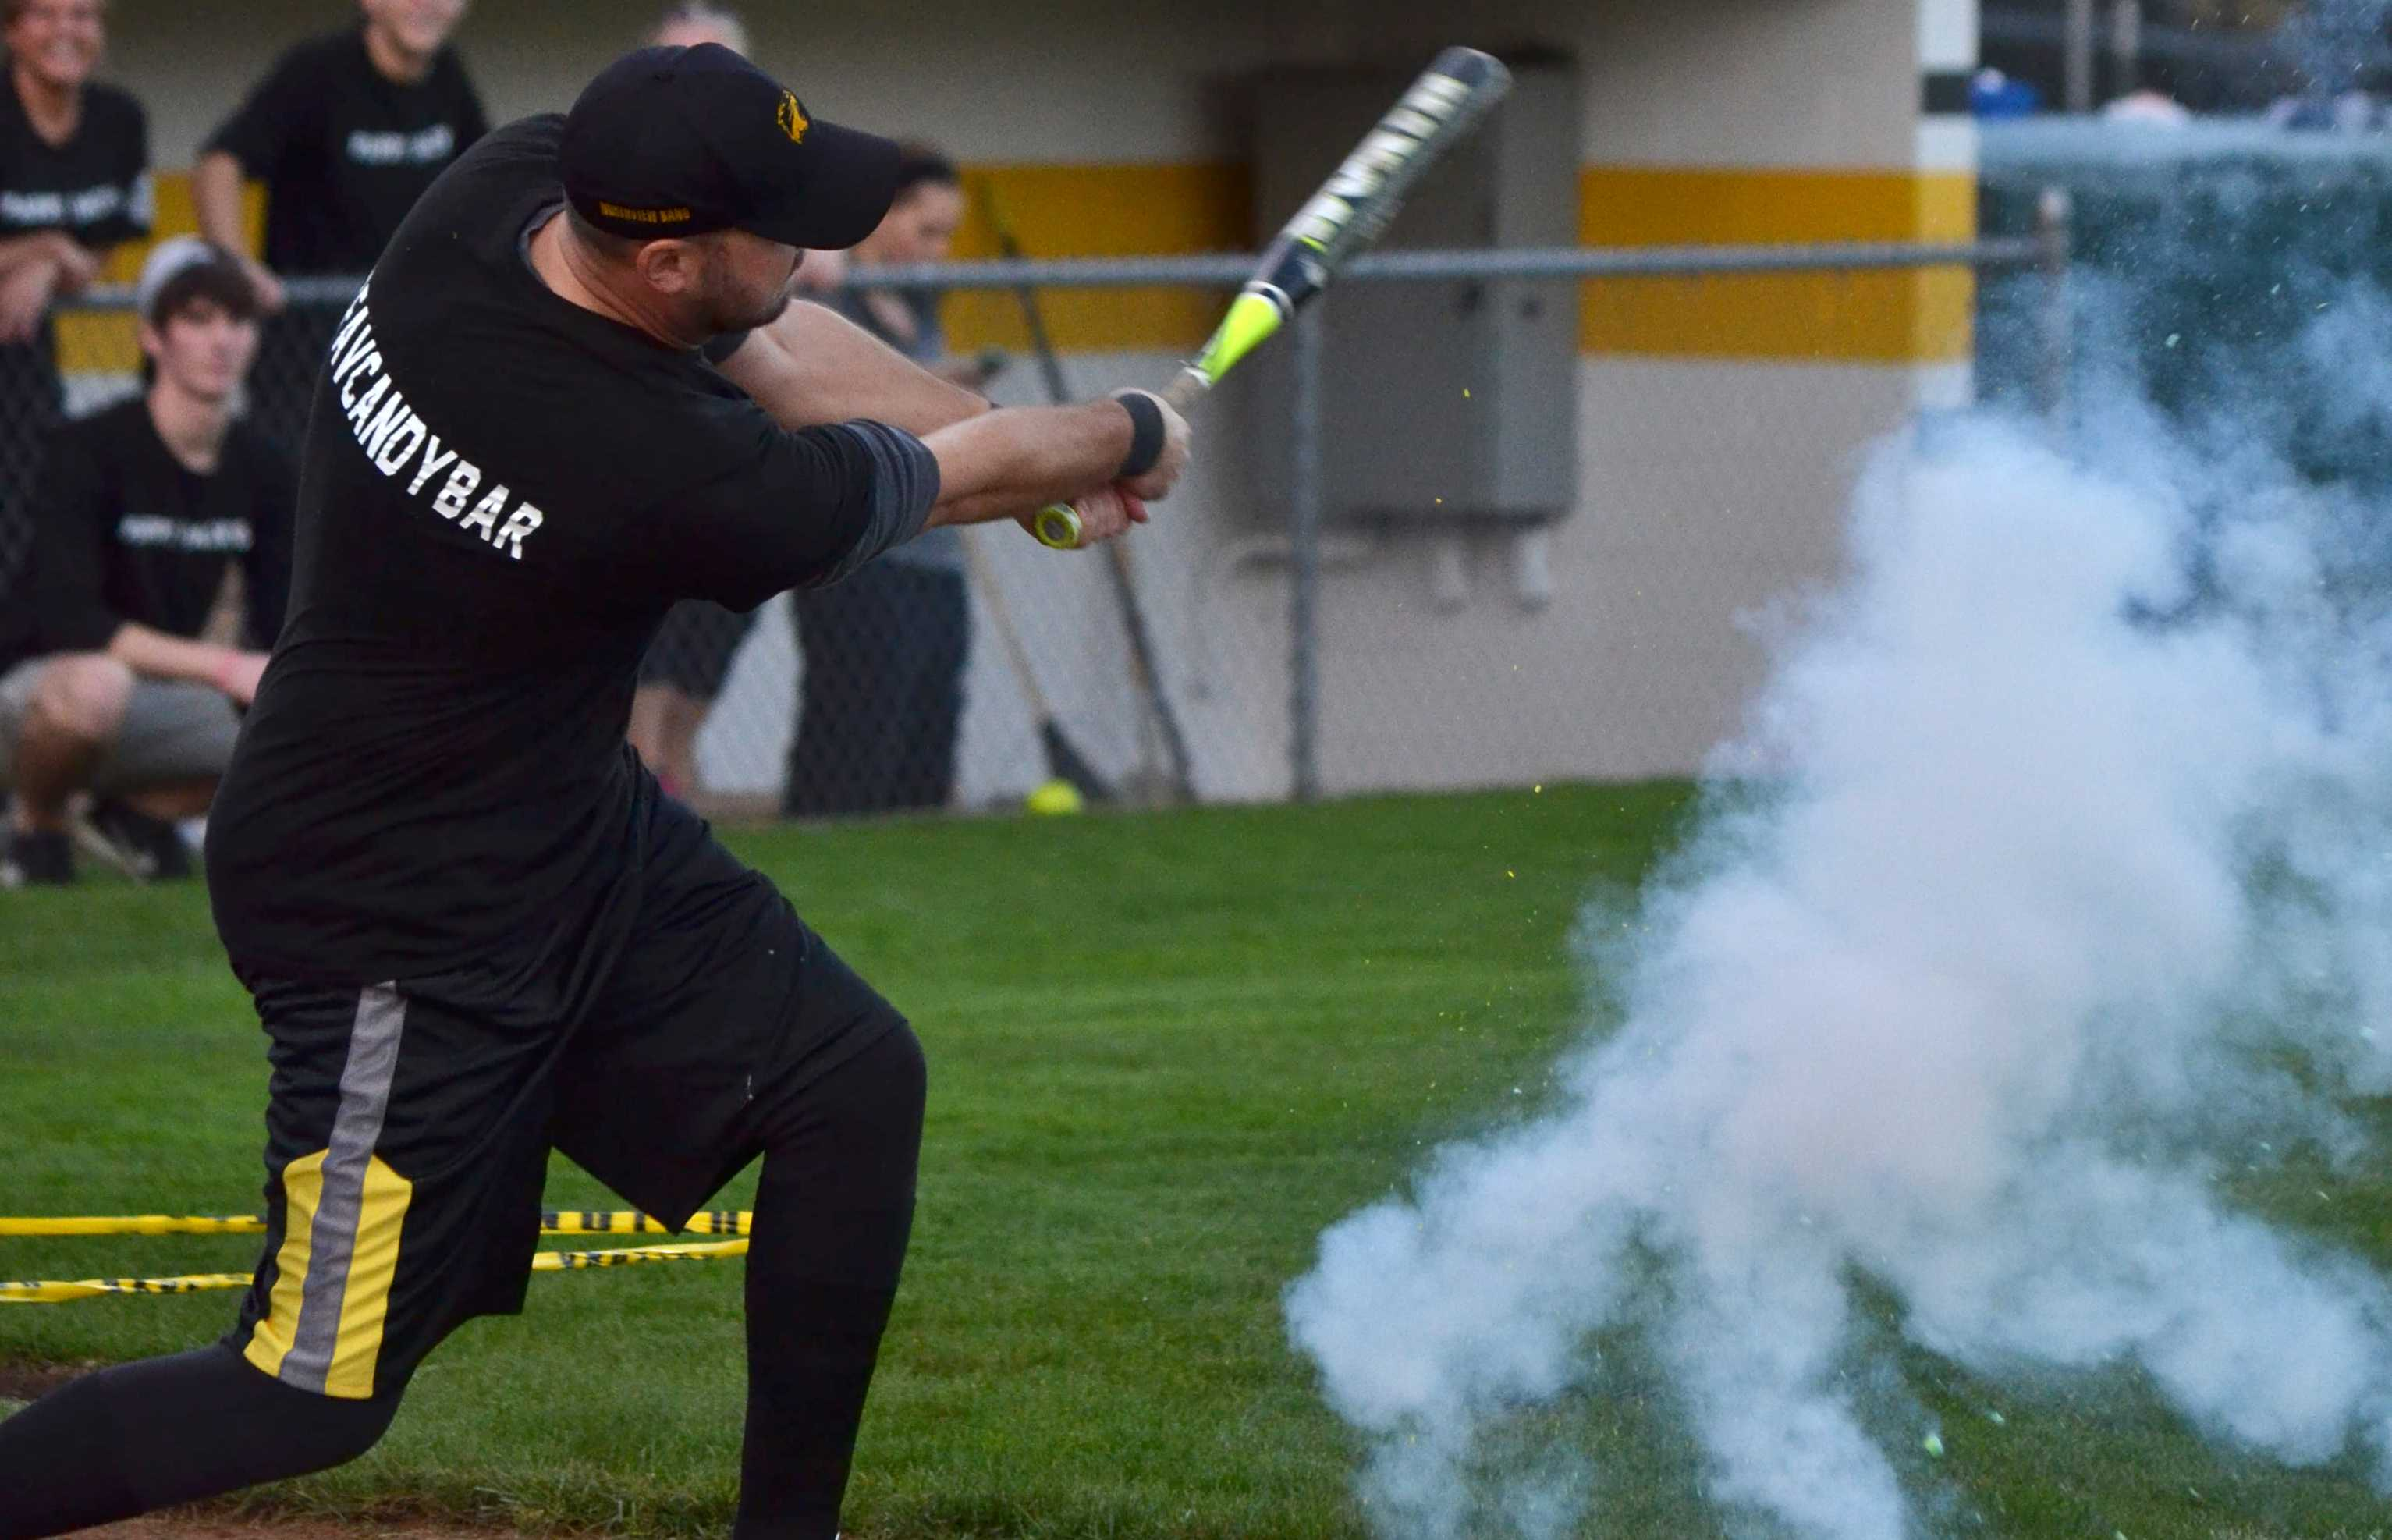 Teachers play charity softball match to raise money for Victory Center